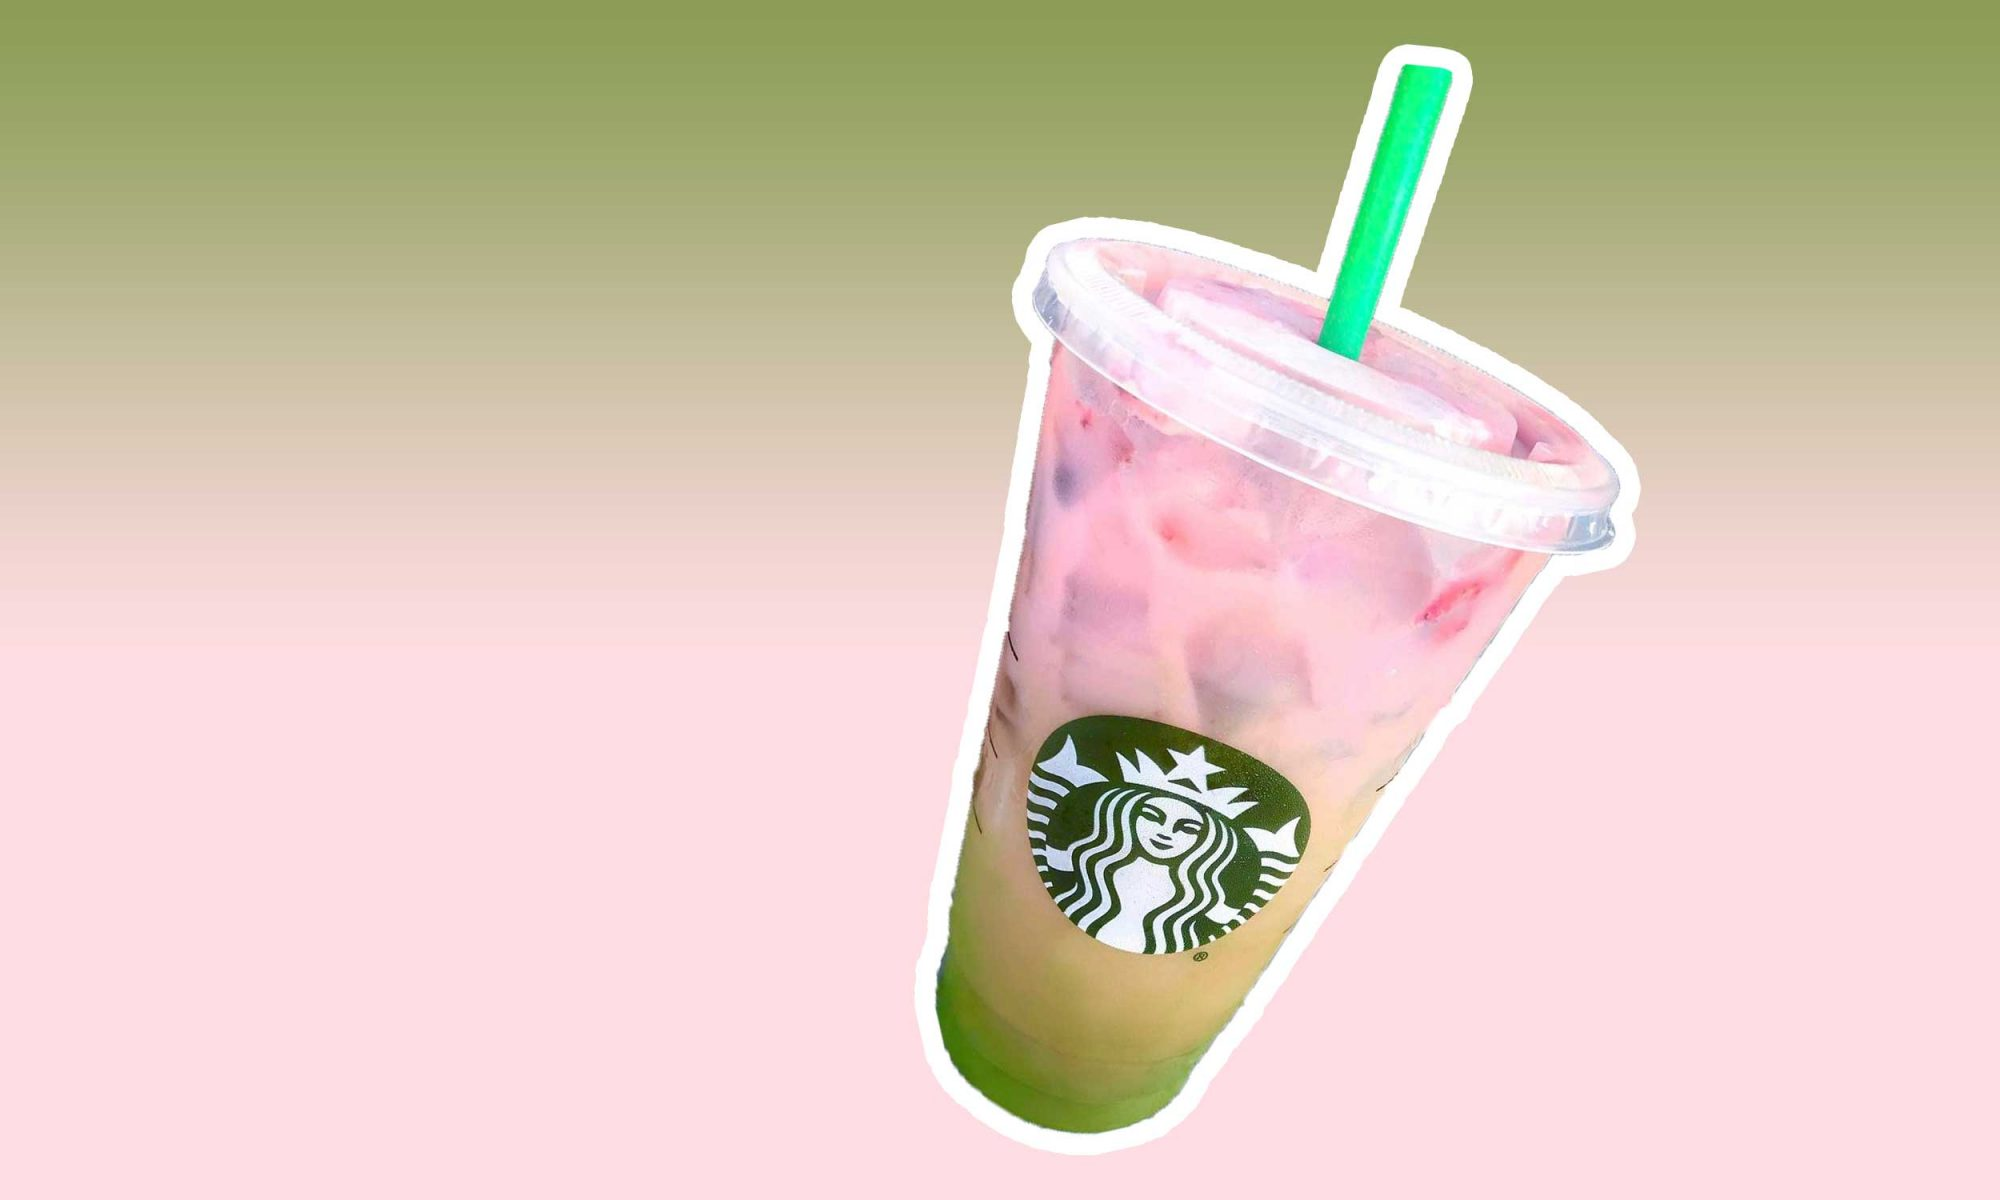 EC: This New Ombre Starbucks Drink Is Every Barista's Worst Nightmare